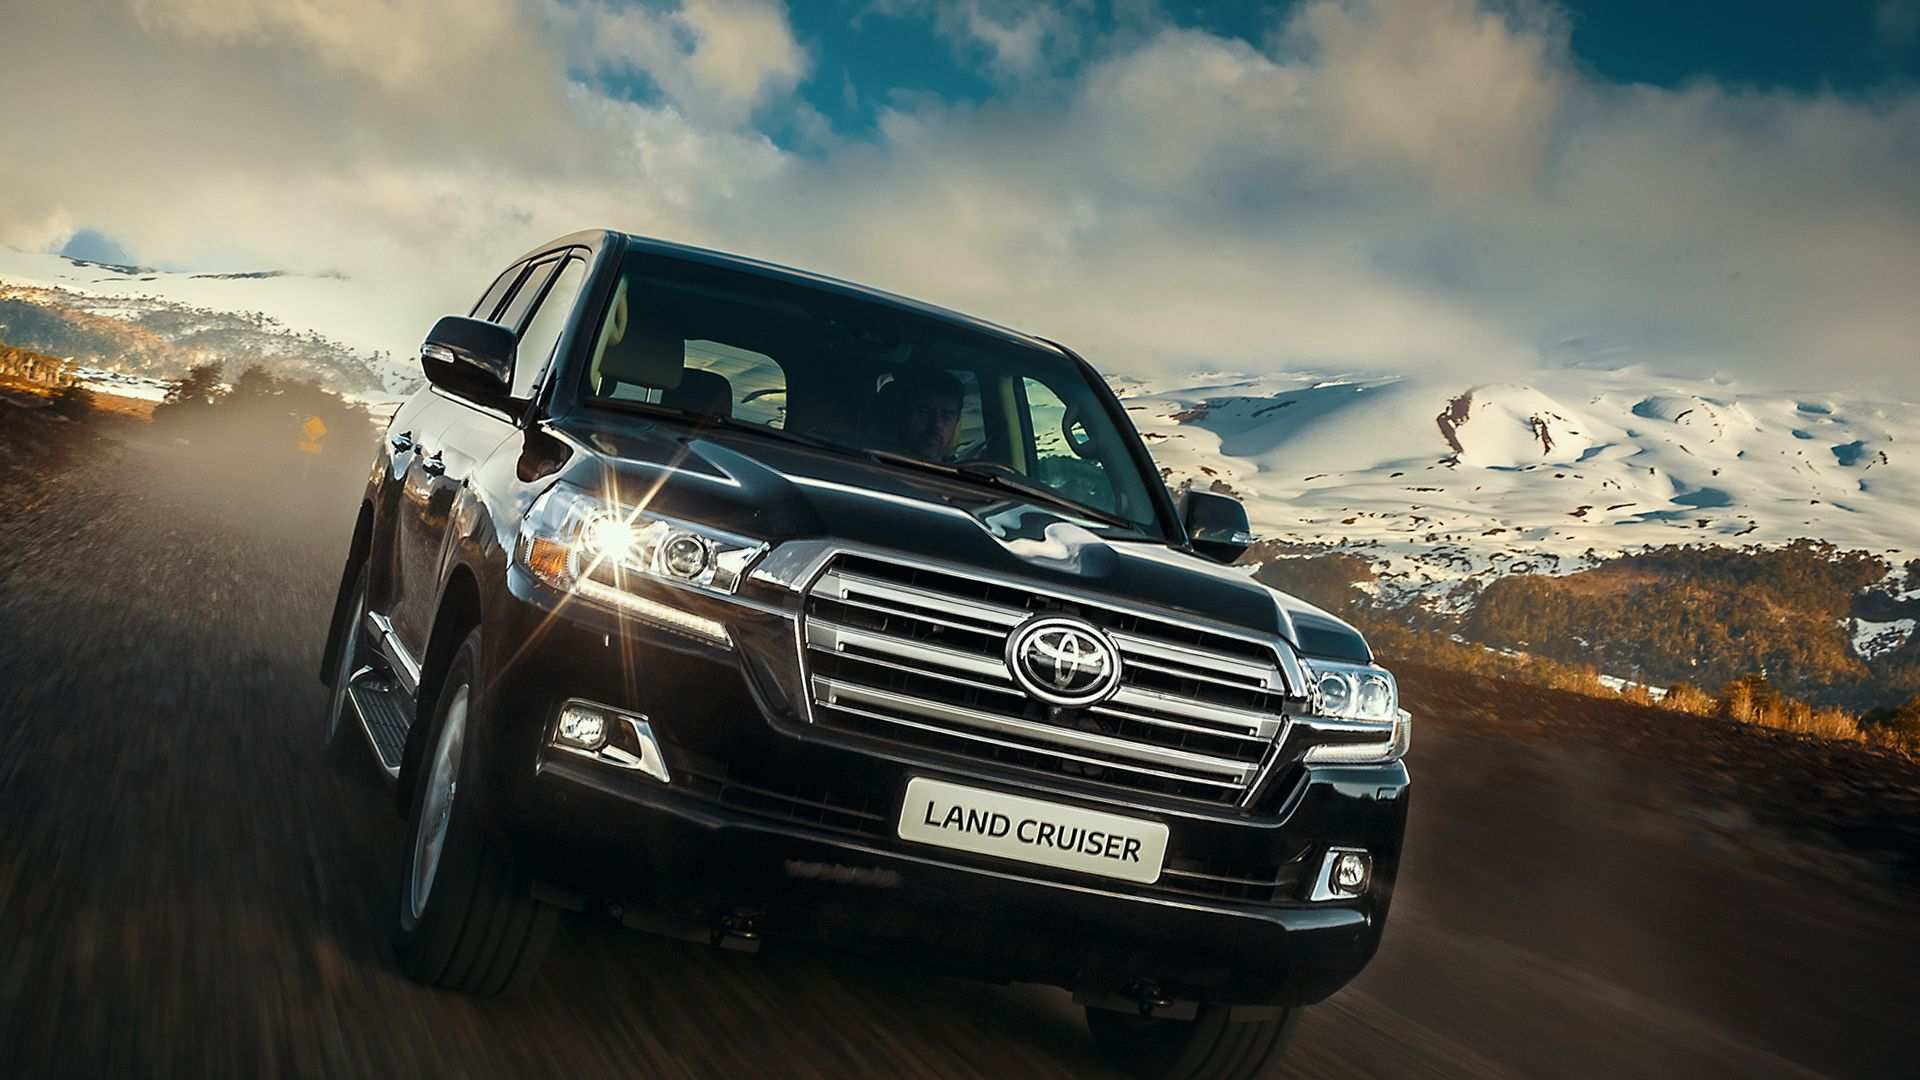 96 Great 2019 Toyota Land Cruiser 200 New Concept by 2019 Toyota Land Cruiser 200